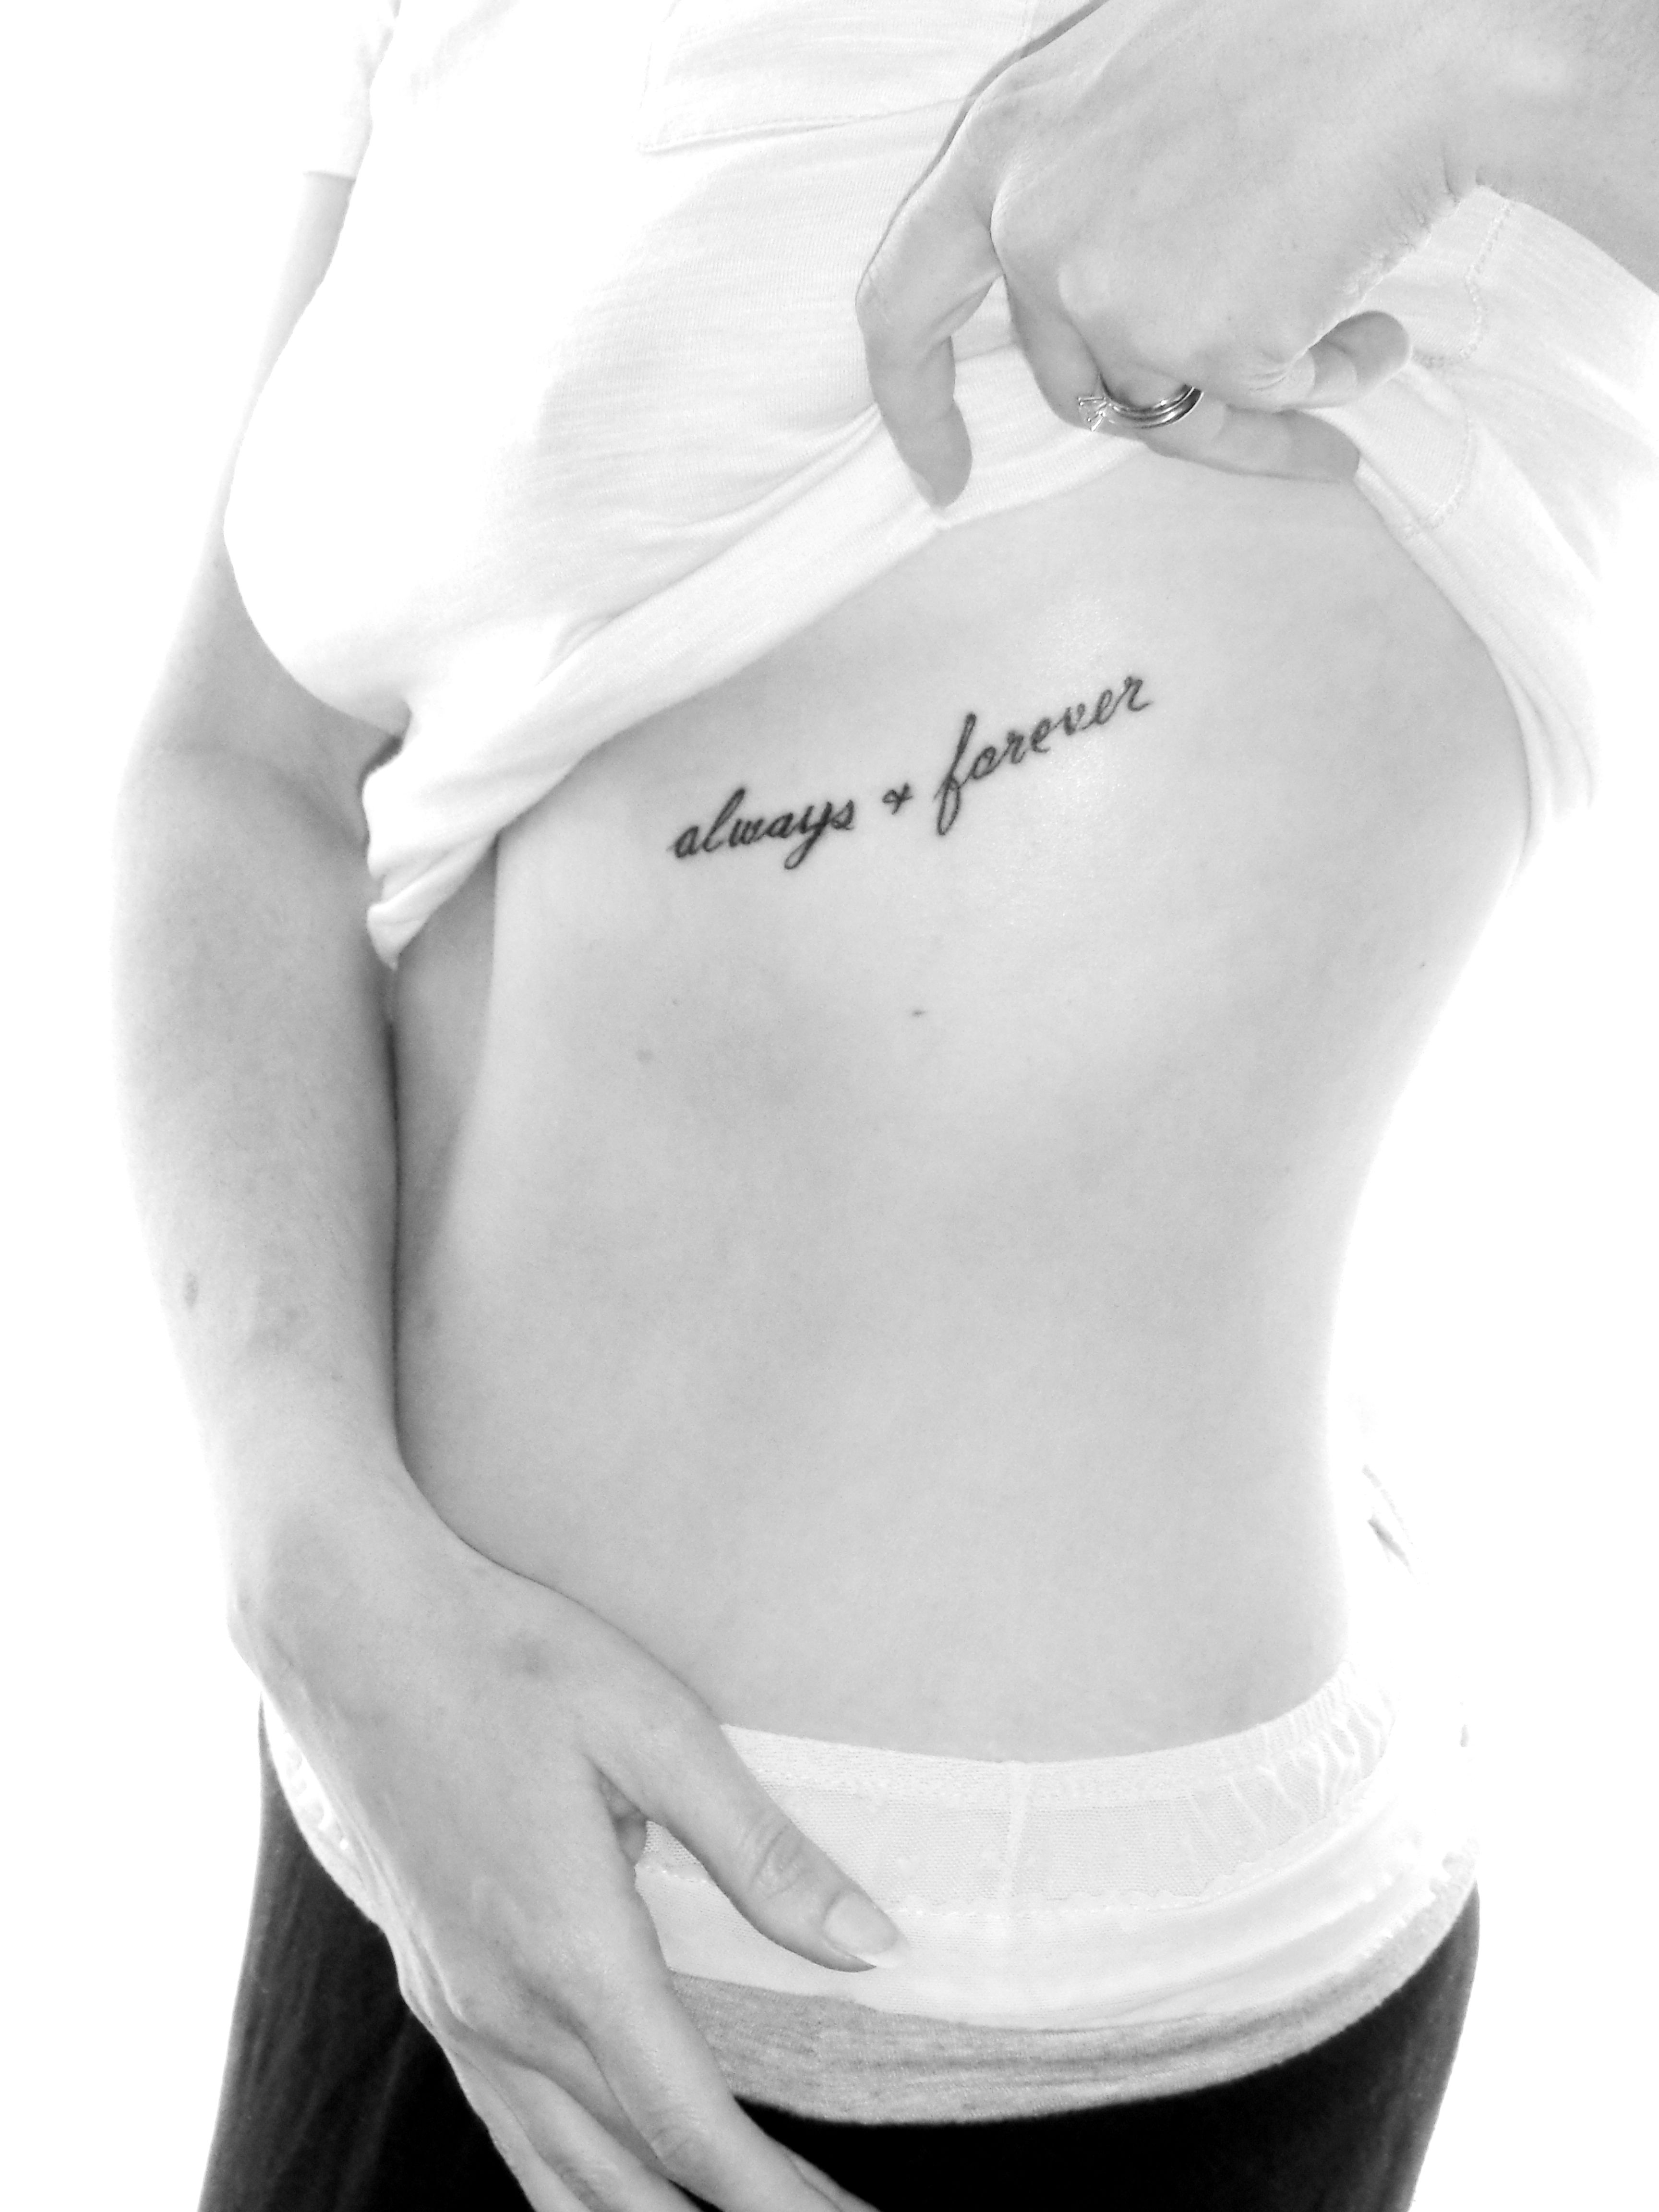 Always And Forever Tattoo : always, forever, tattoo, Ashlee, Arensdorf, Mertens, Tattoos, Forever, Tattoo,, Always, Collar, Tattoo